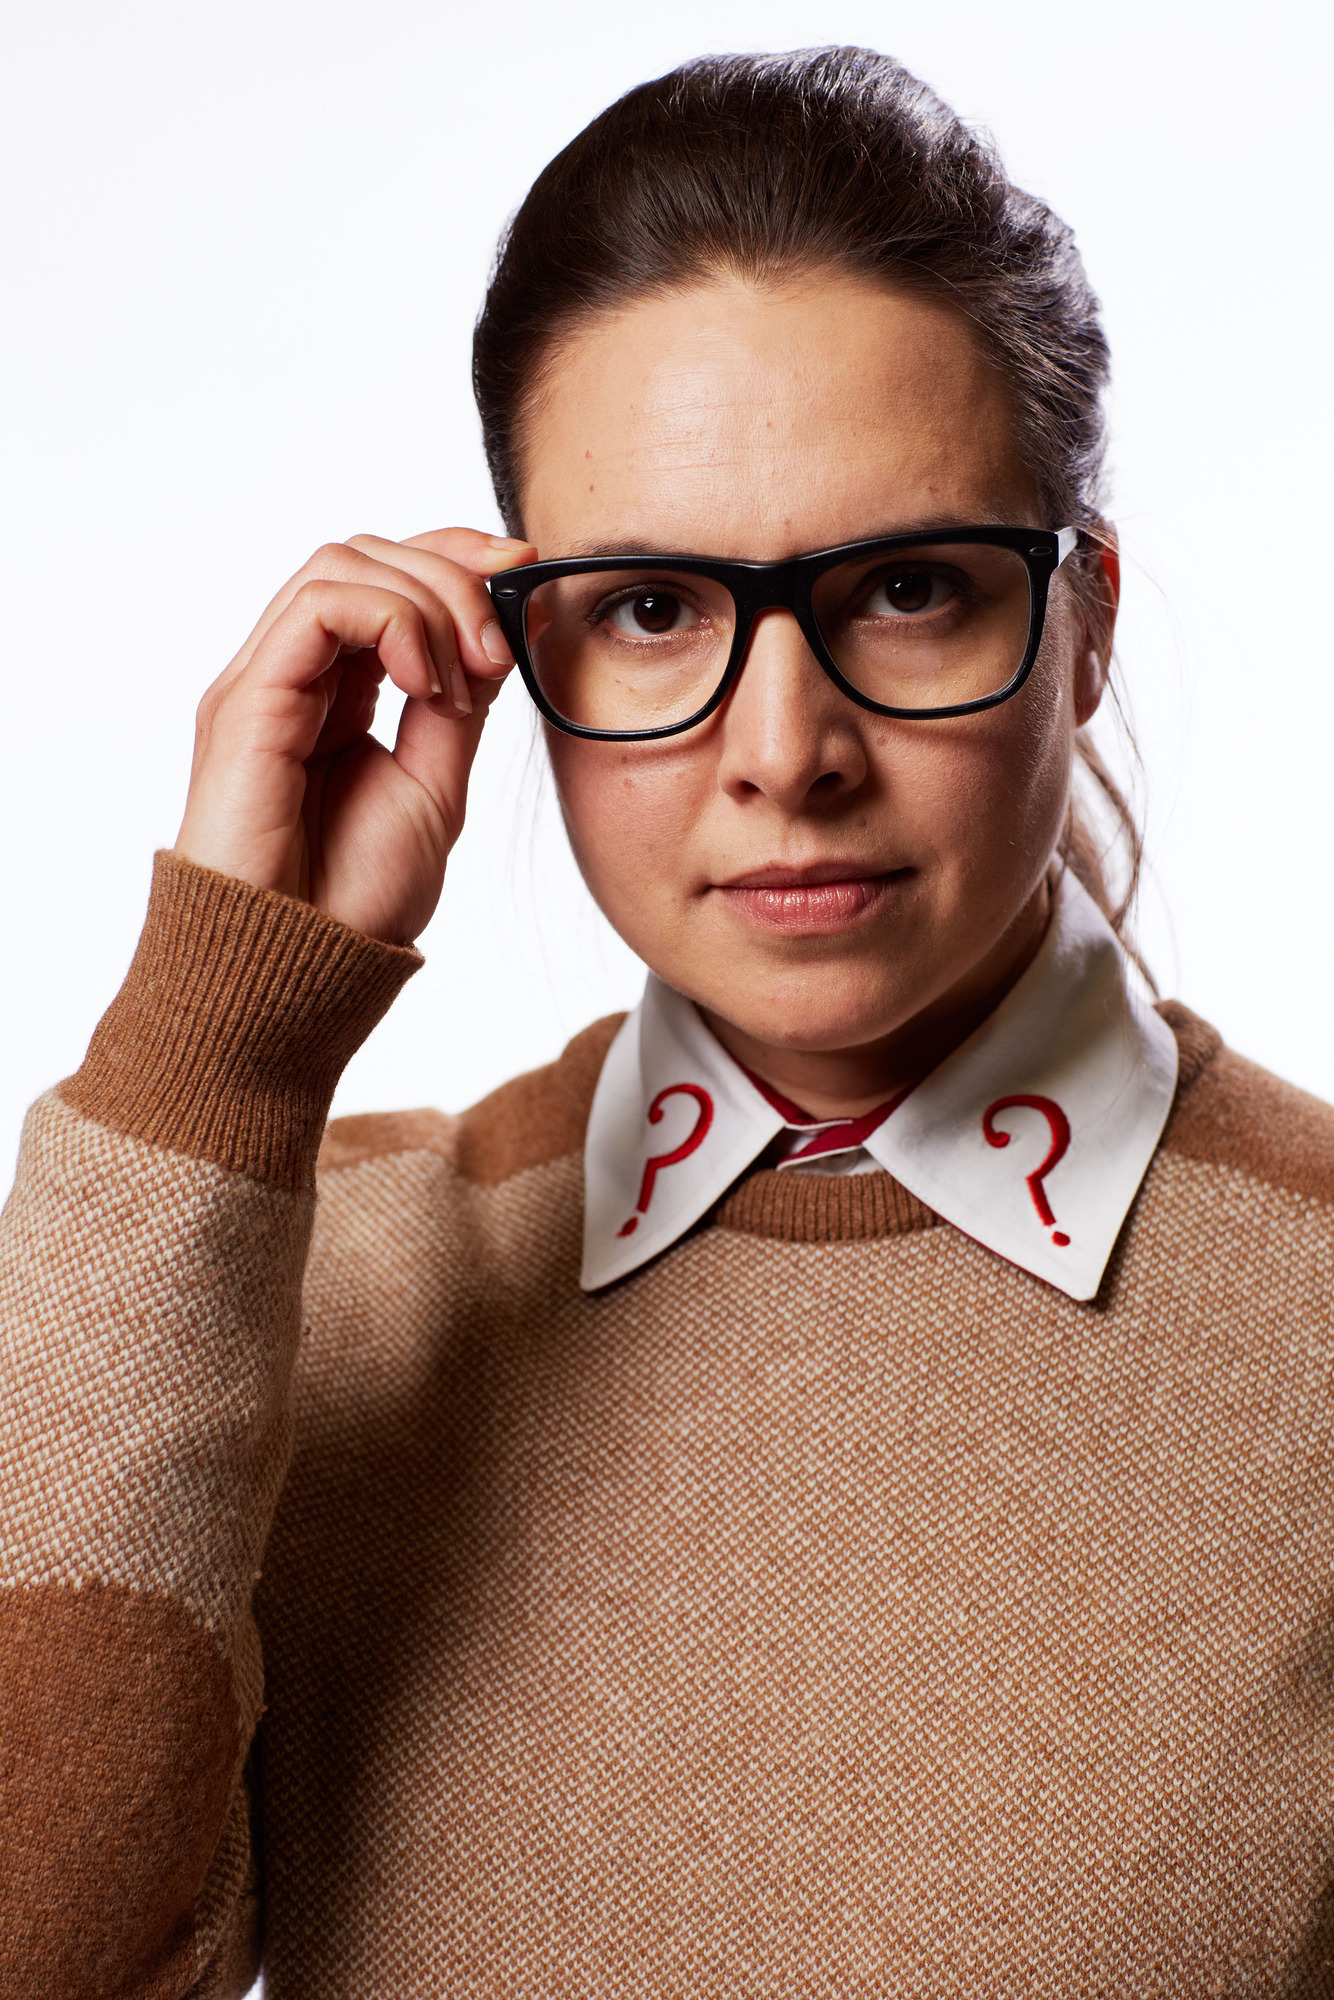 Doctor Who: 5 reasons why Osgood should be the next companion